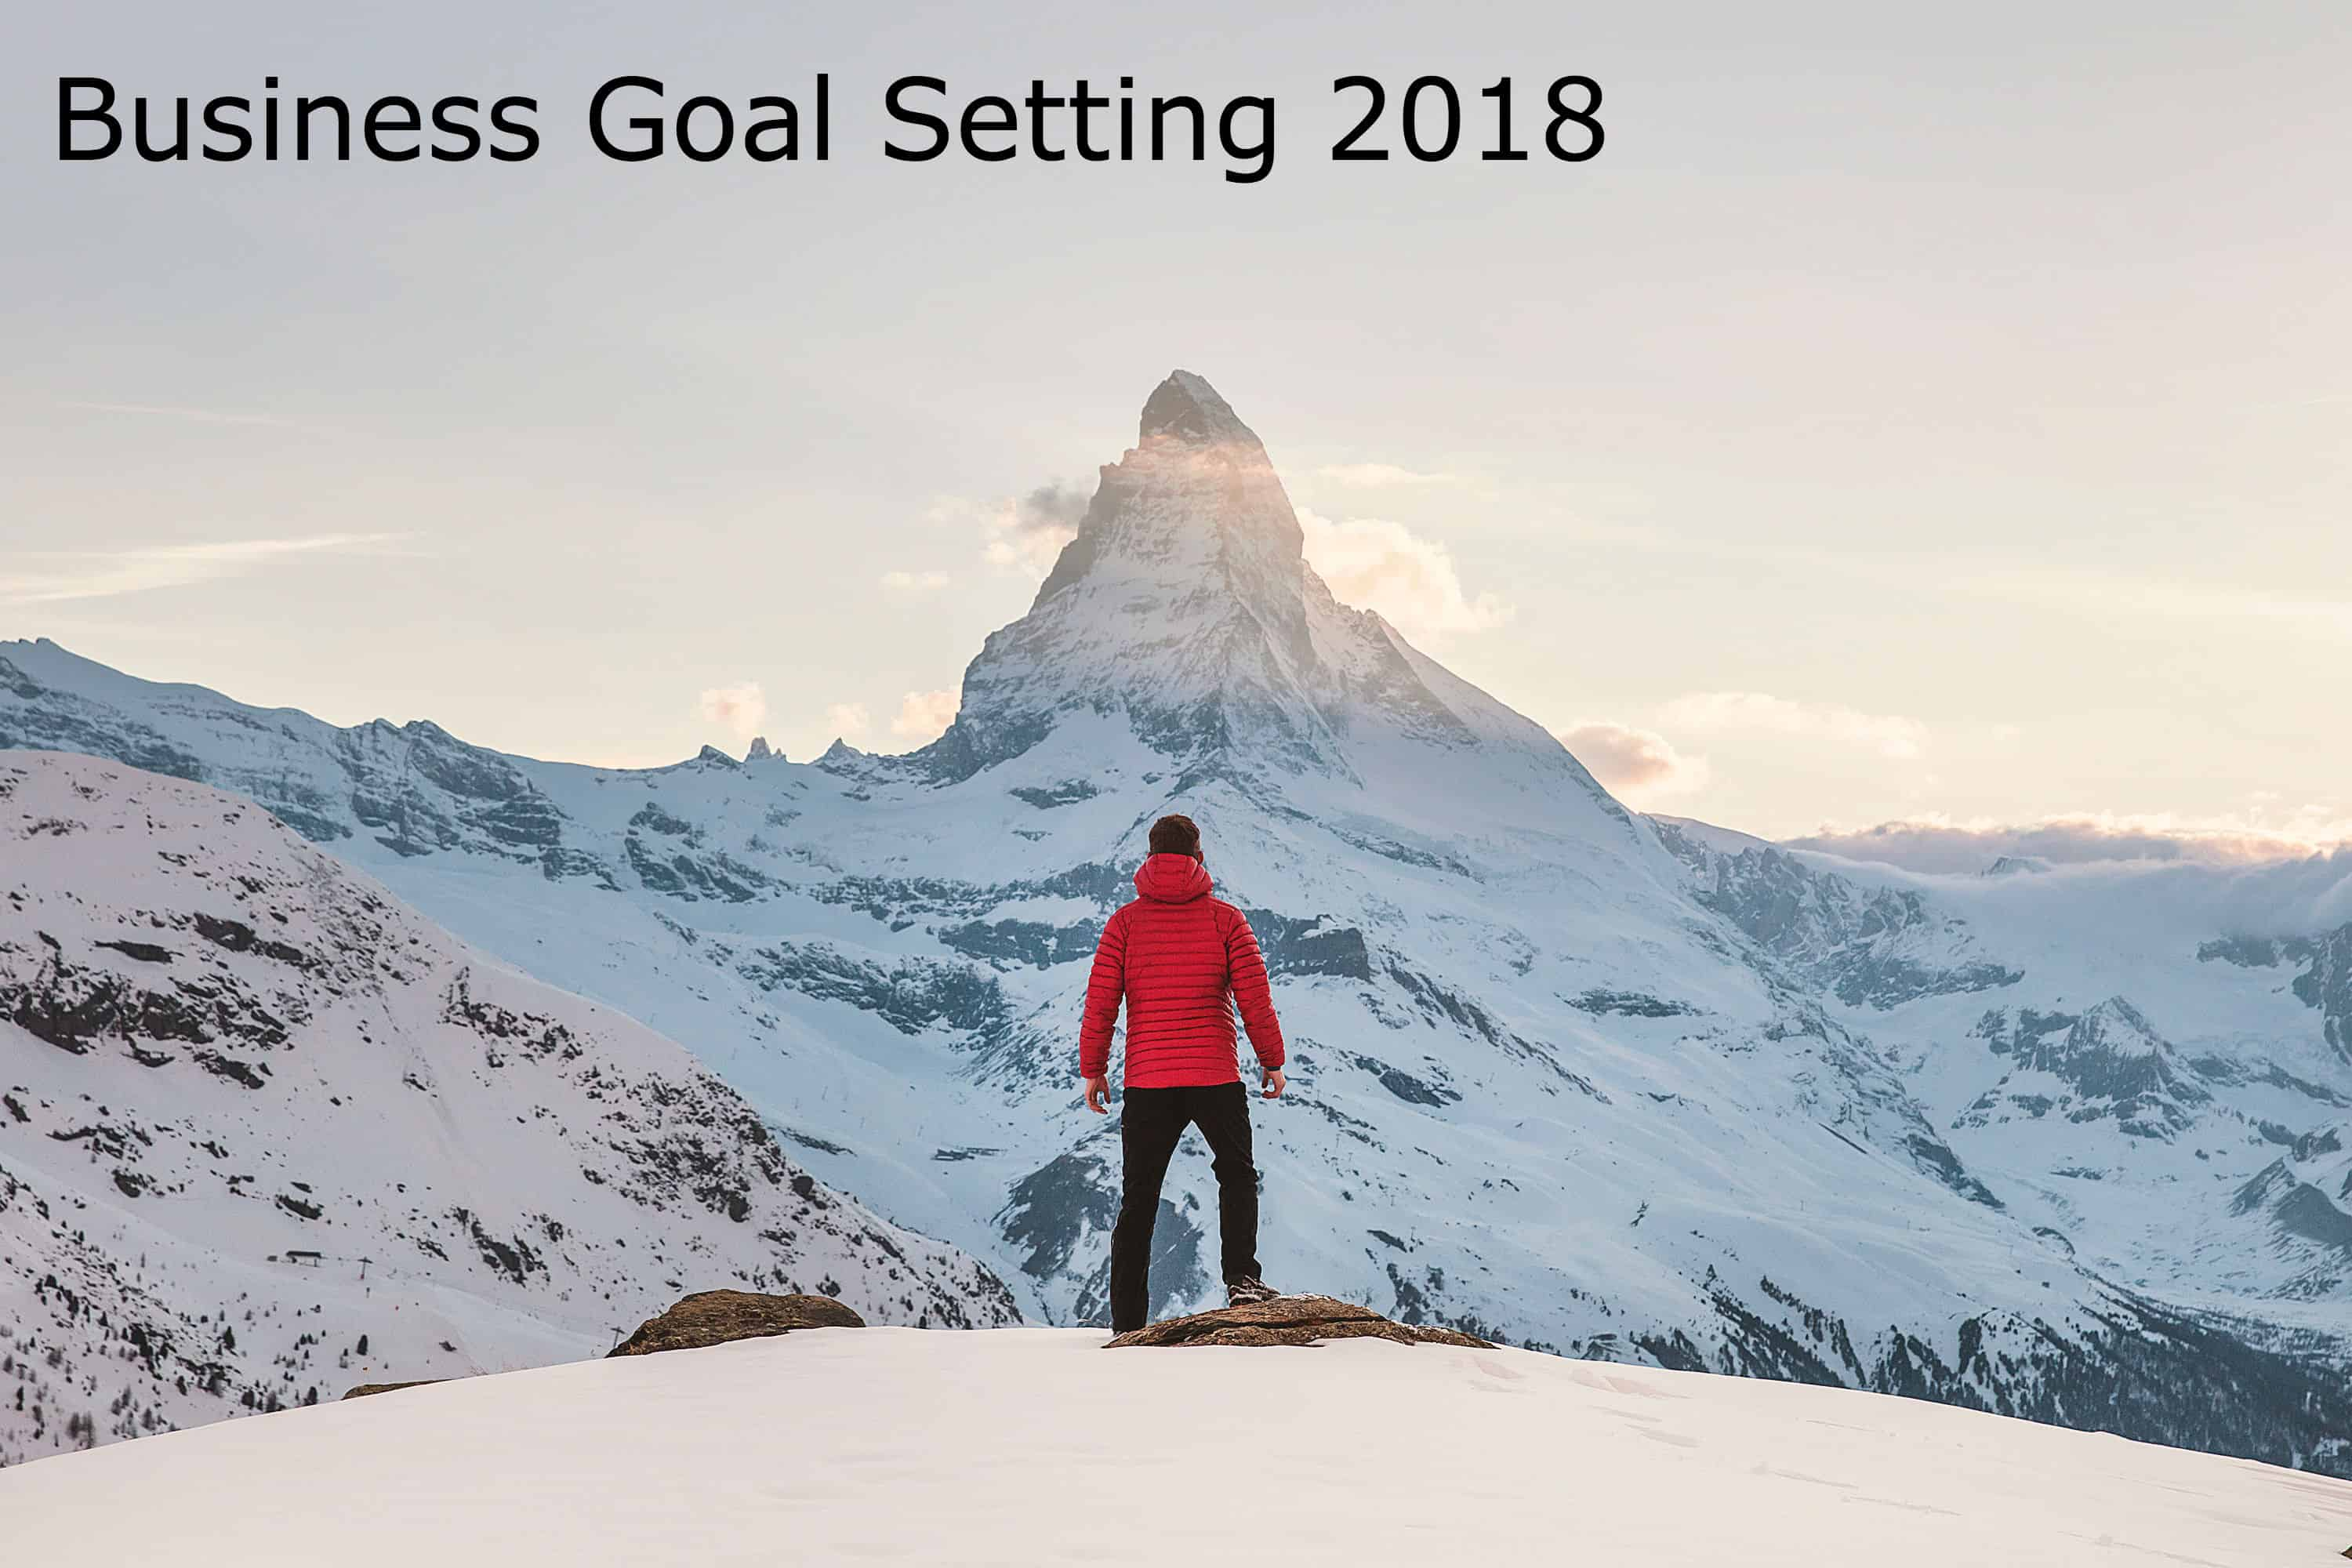 Business Goal Setting: How to Plan for a Profitable 2018